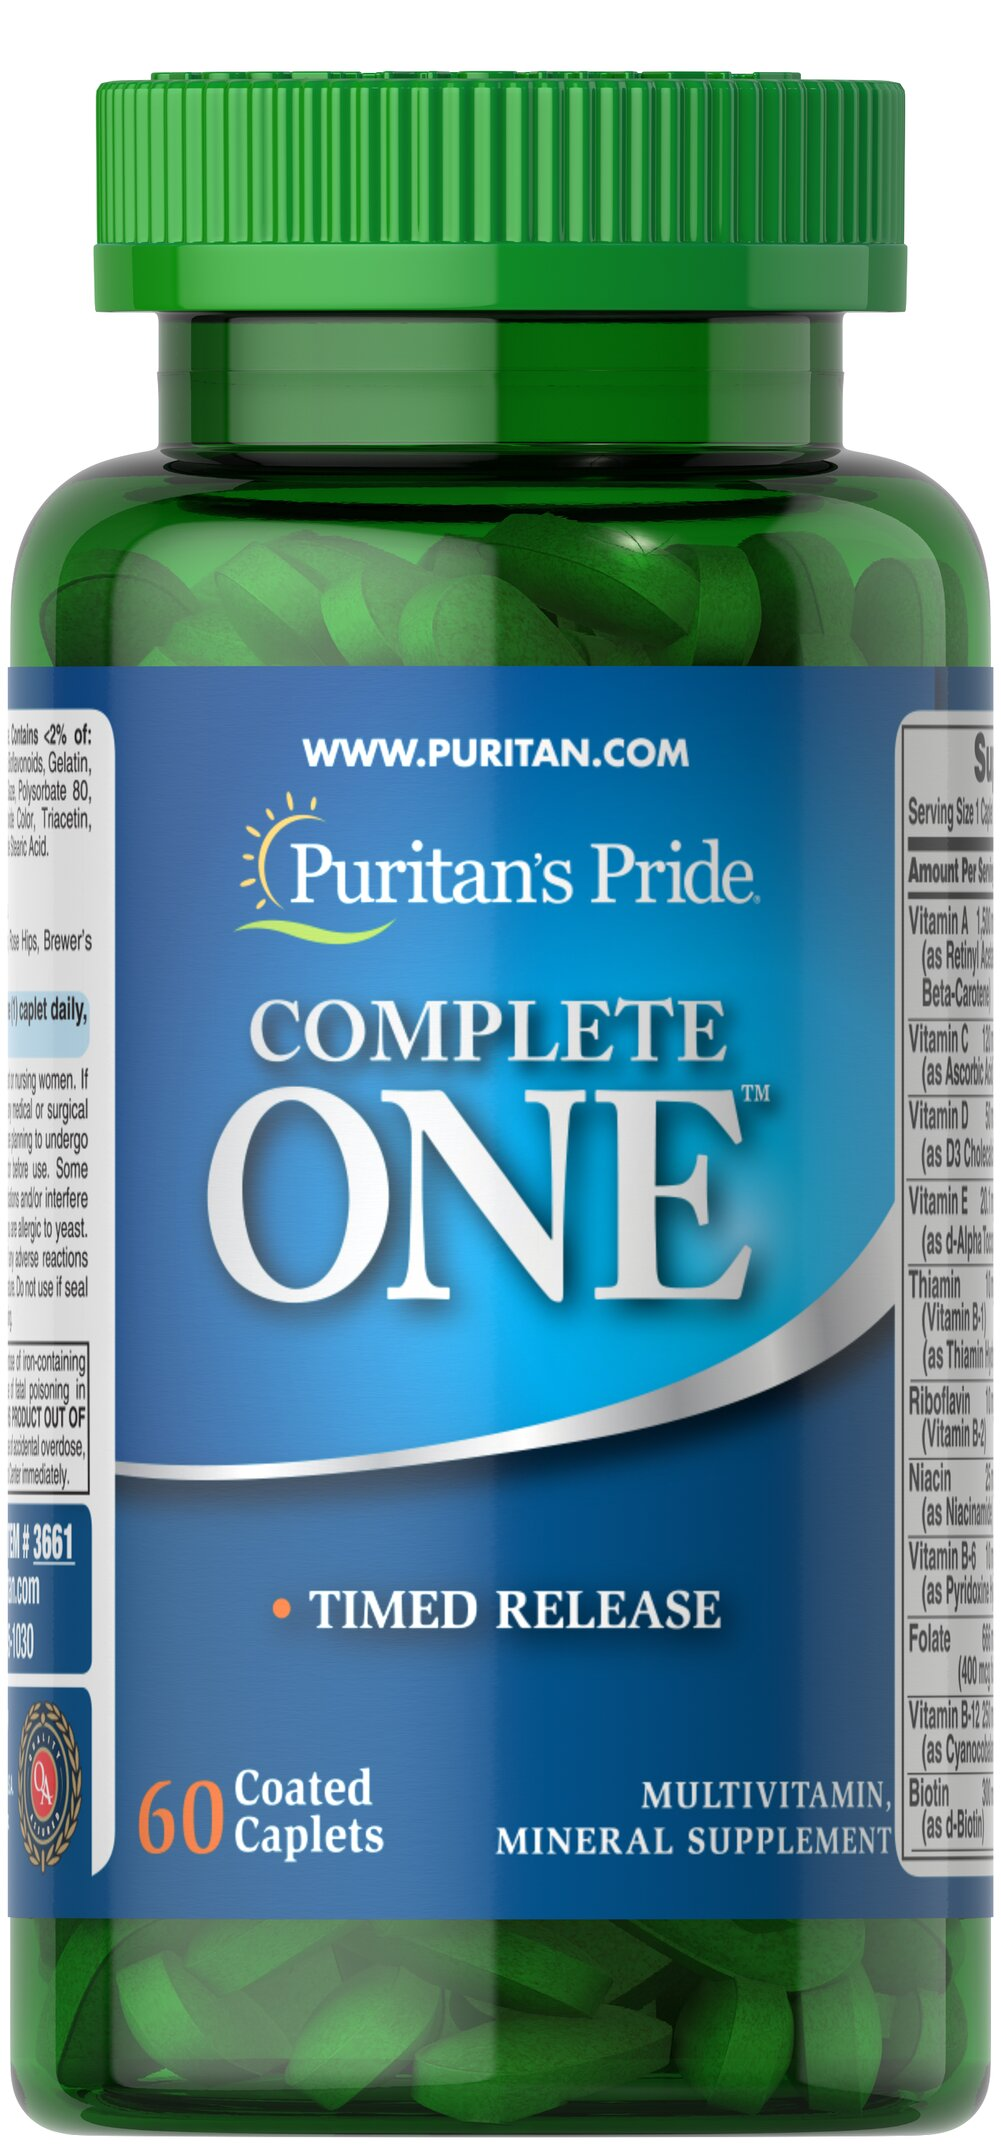 Puritan's Pride One™ Multivitamins Timed Release <p>Special multivitamins formula with beta-carotene. Each easy-to-swallow tablet provides: 28 essential nutrients, long acting B-Complex and C Vitamins, plus 13 Essential Minerals including Chromium, Selenium and Zinc.</p> 60 Caplets  $14.99